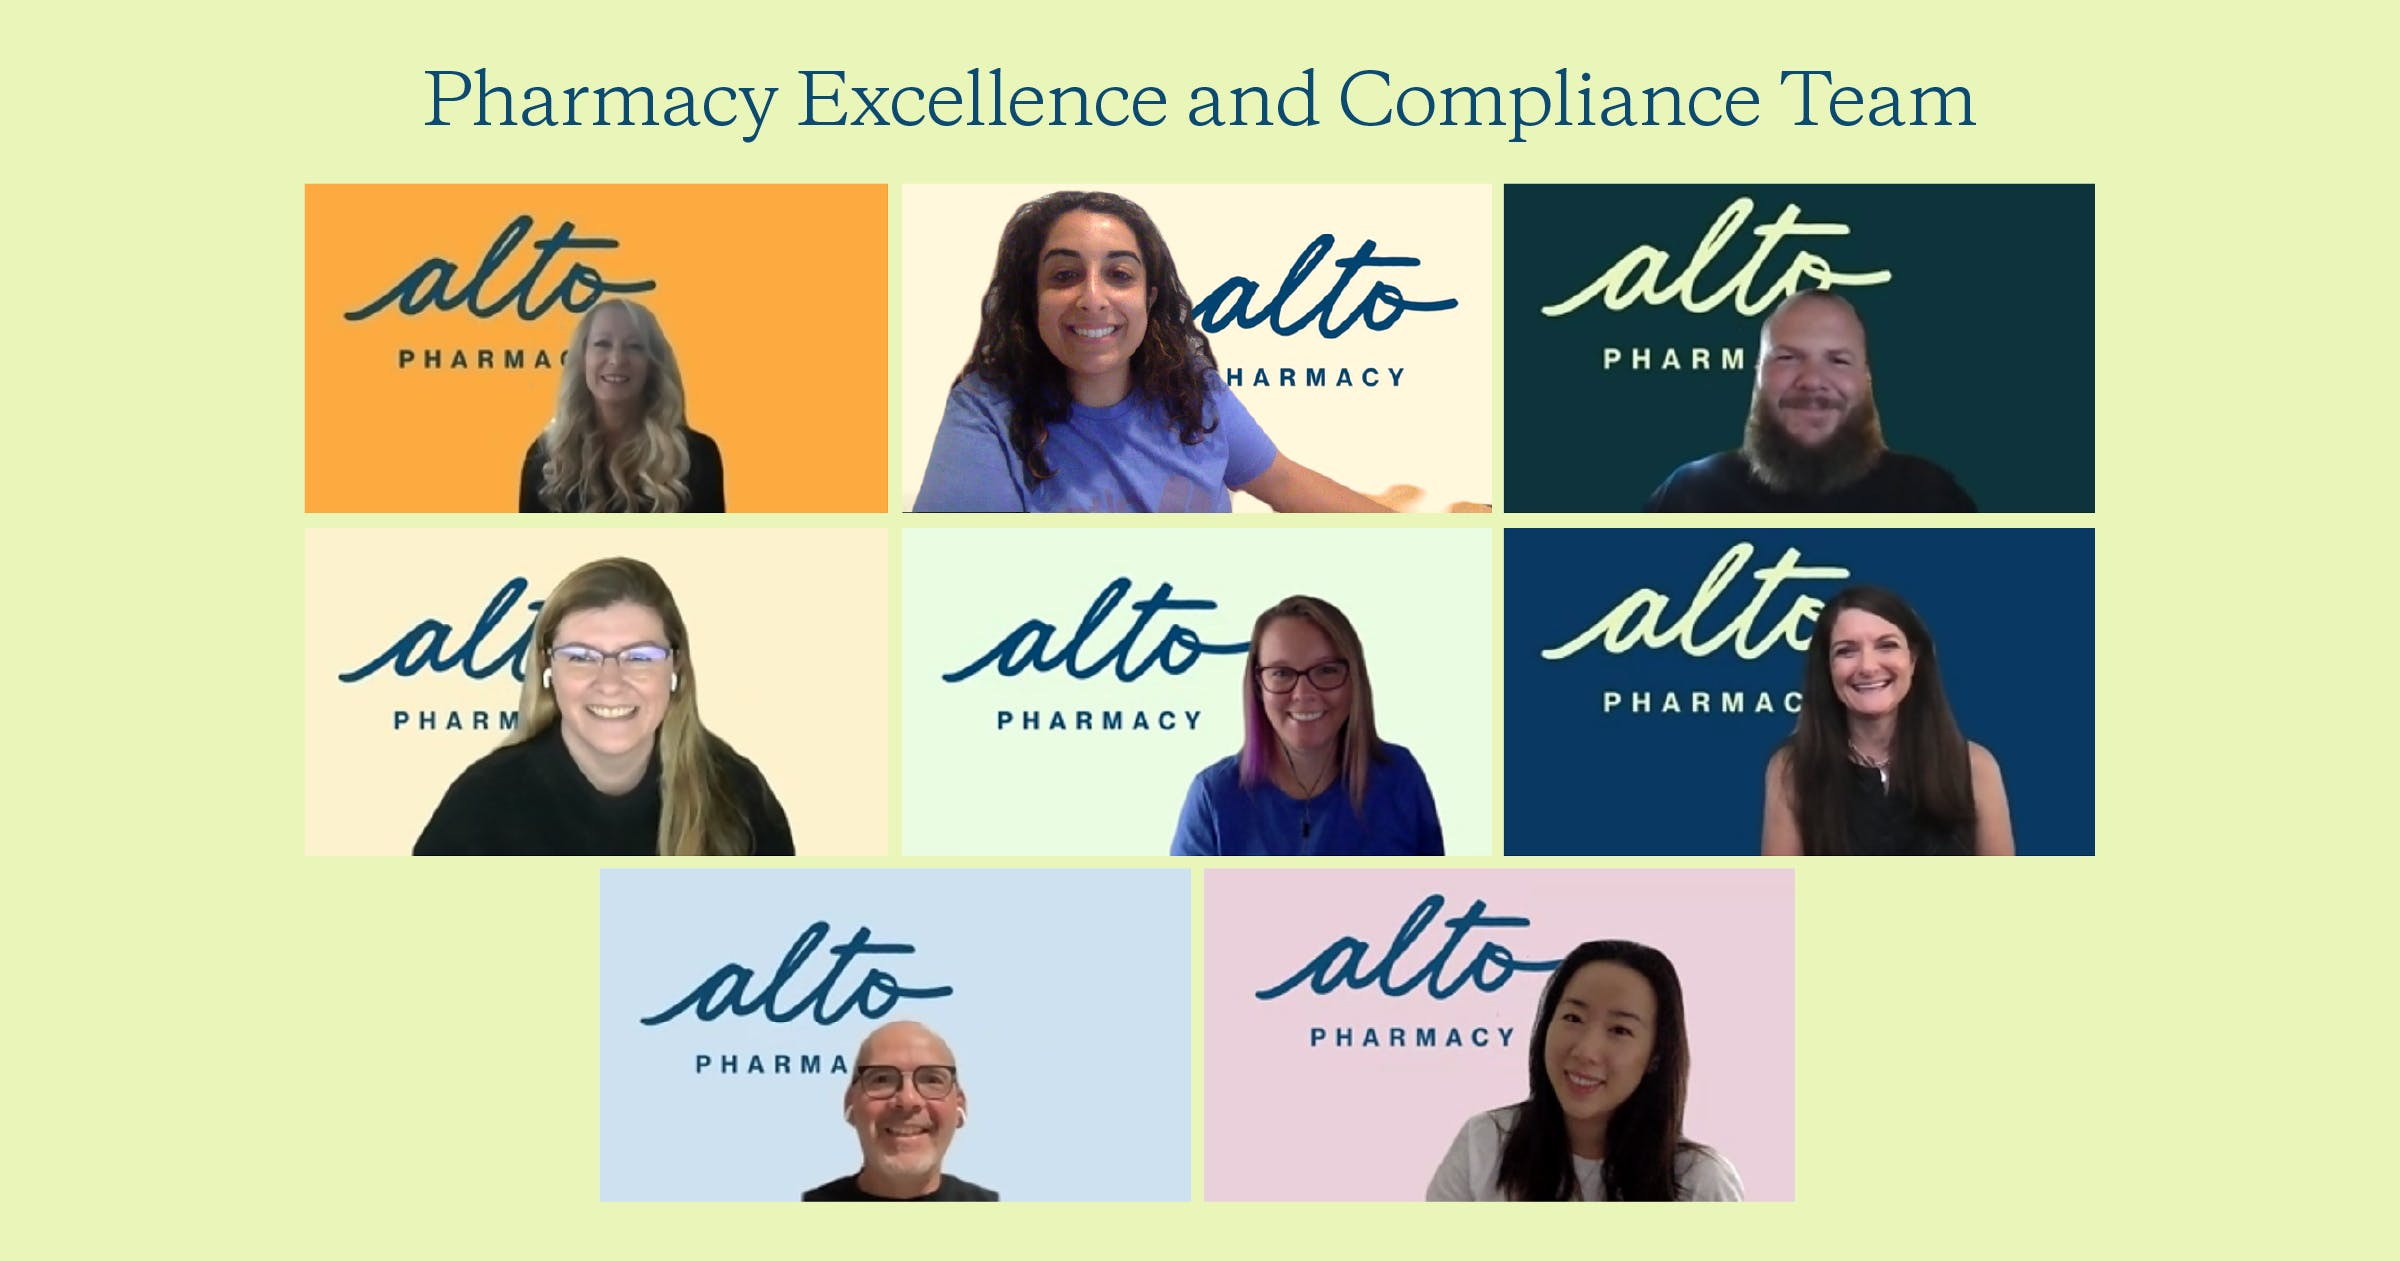 Pharmacy Excellence and Compliance Team